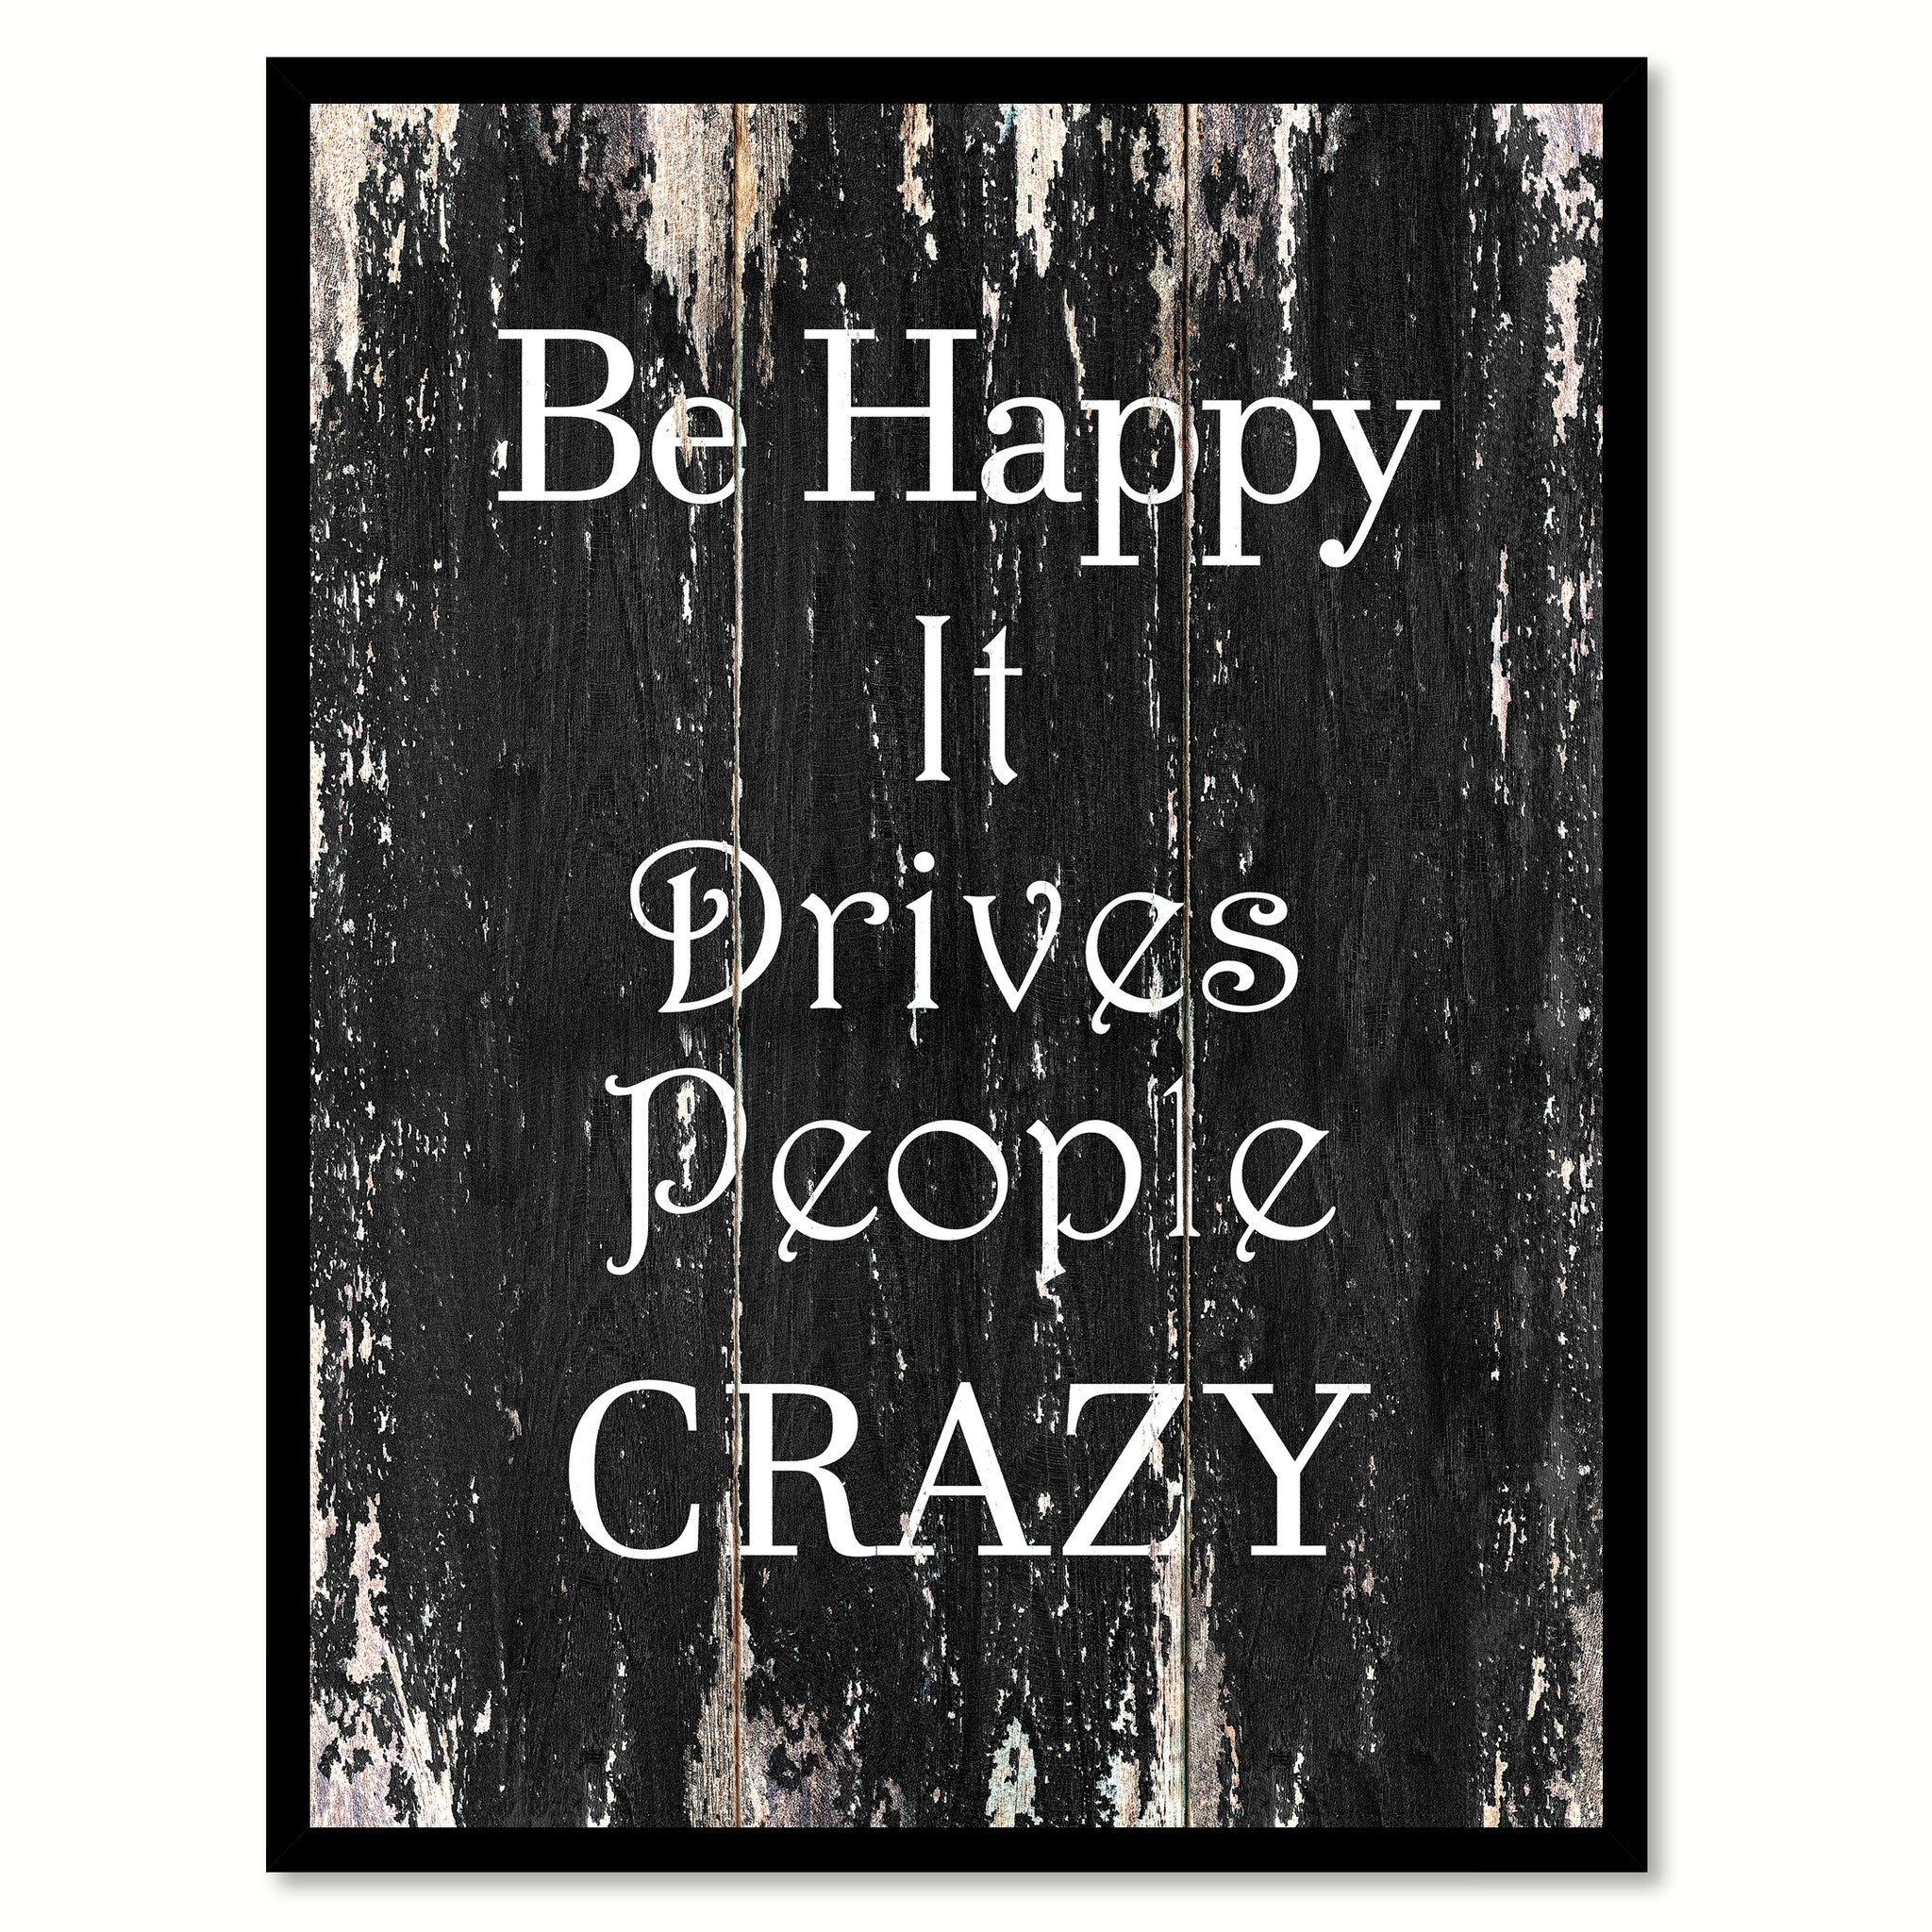 Be happy it drives people crazy Motivational Quote Saying Canvas Print with Picture Frame Home Decor Wall Art